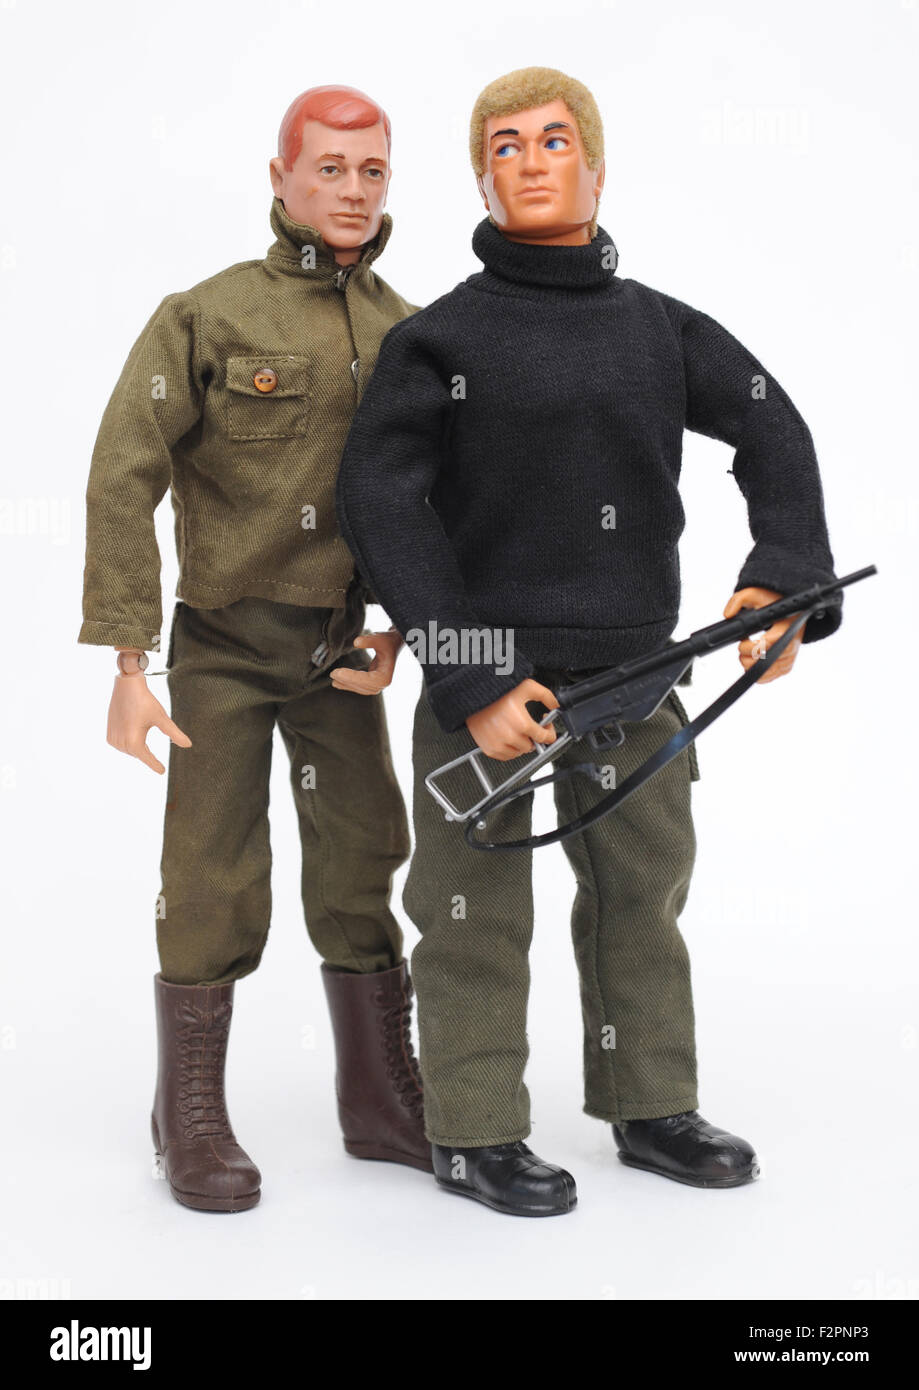 Toys For Gentleman : Vintage s and action man dolls re old toys